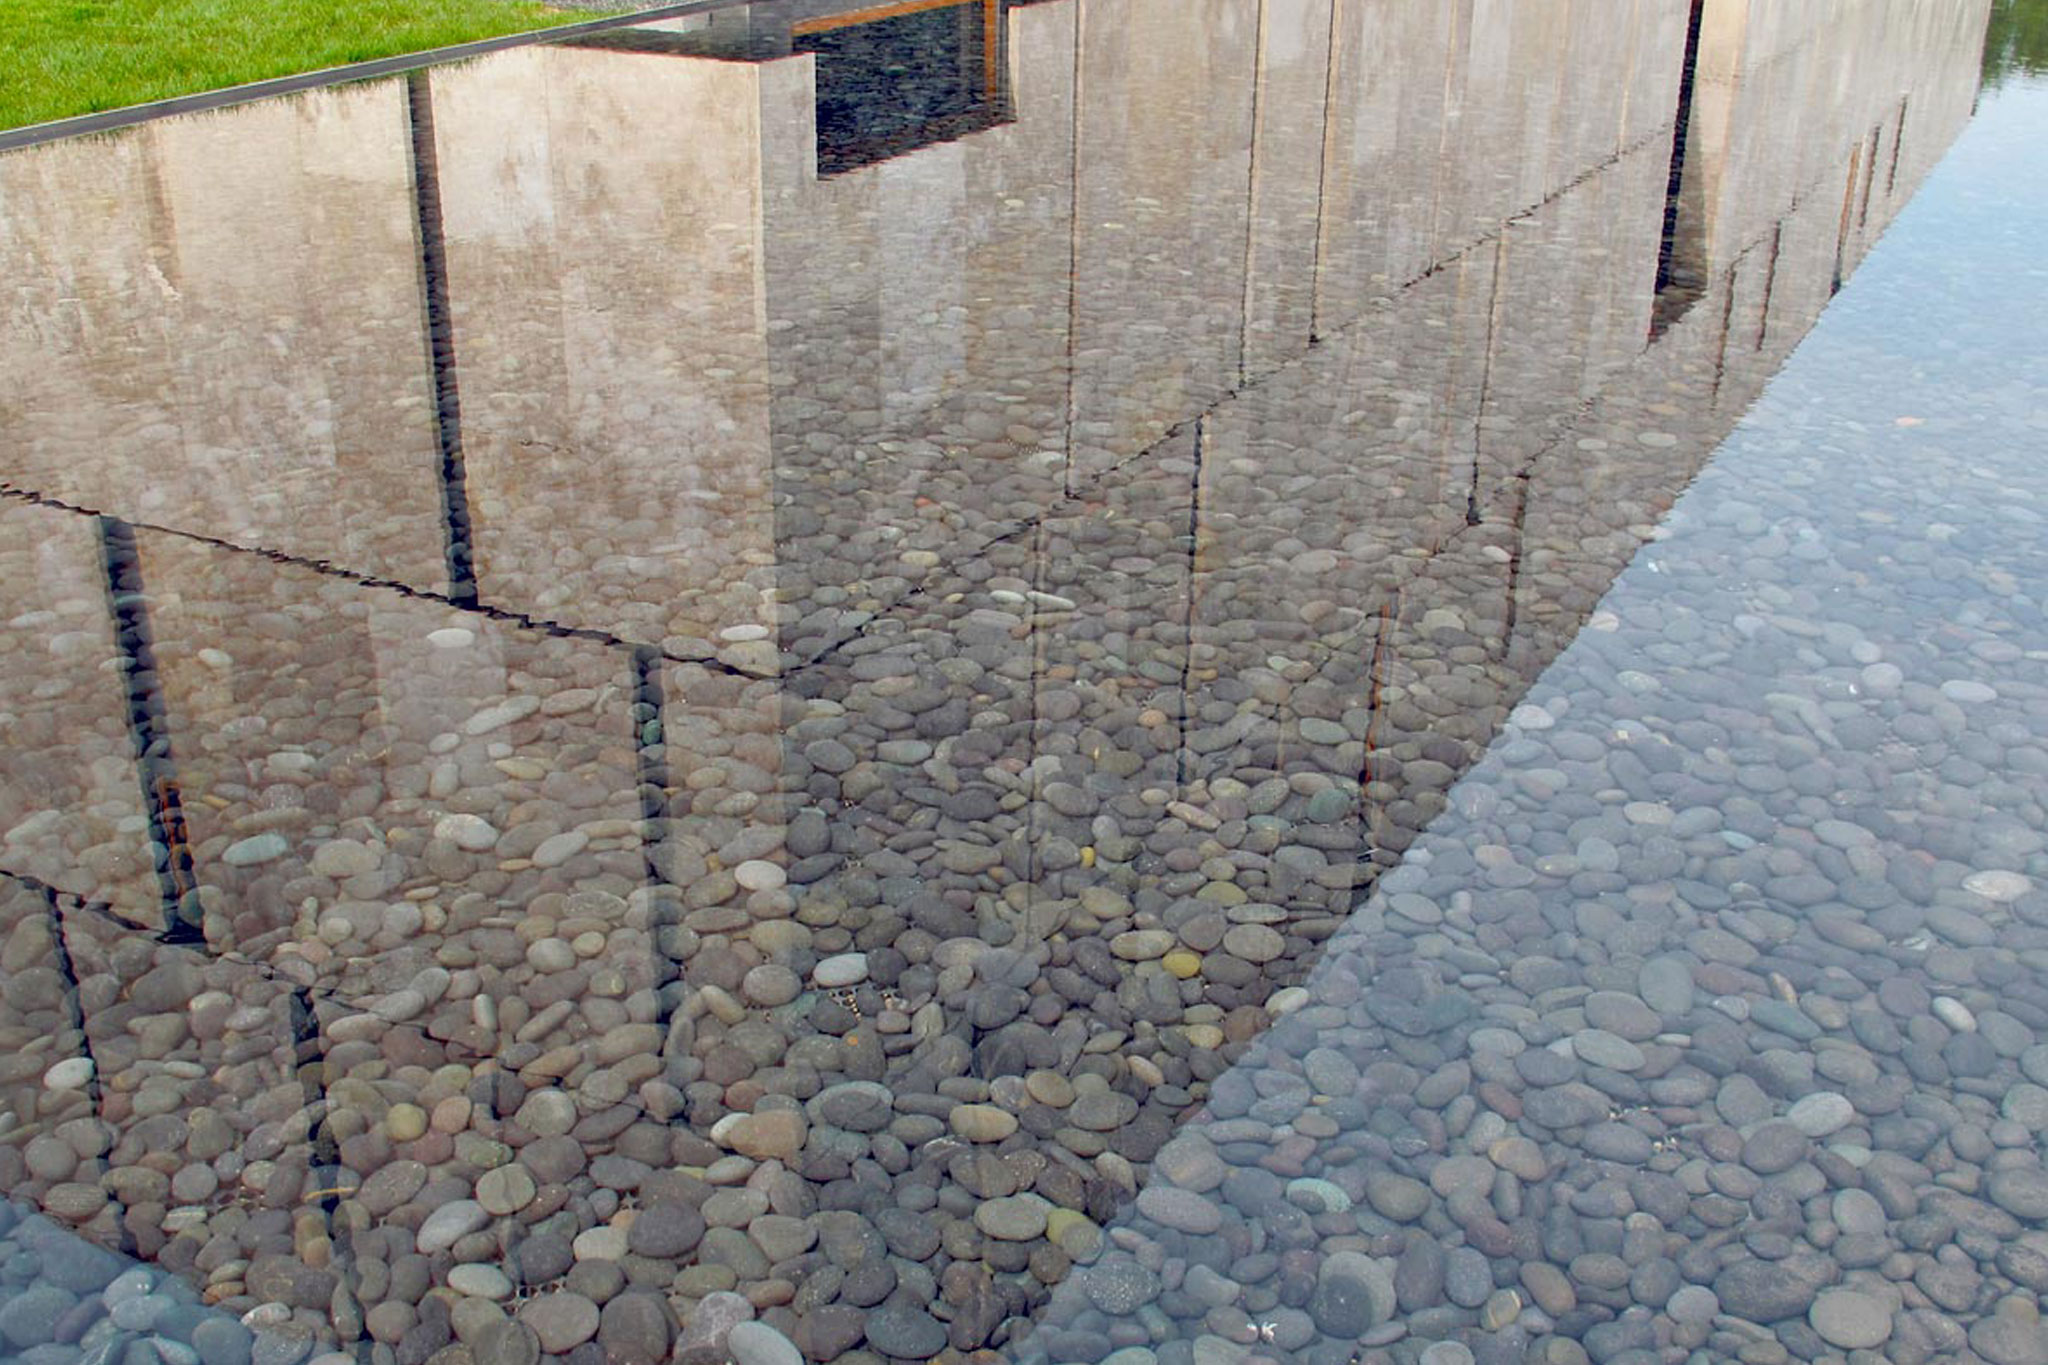 Barnes mueum reflecting pools delta fountains - Invisible edge pool ...